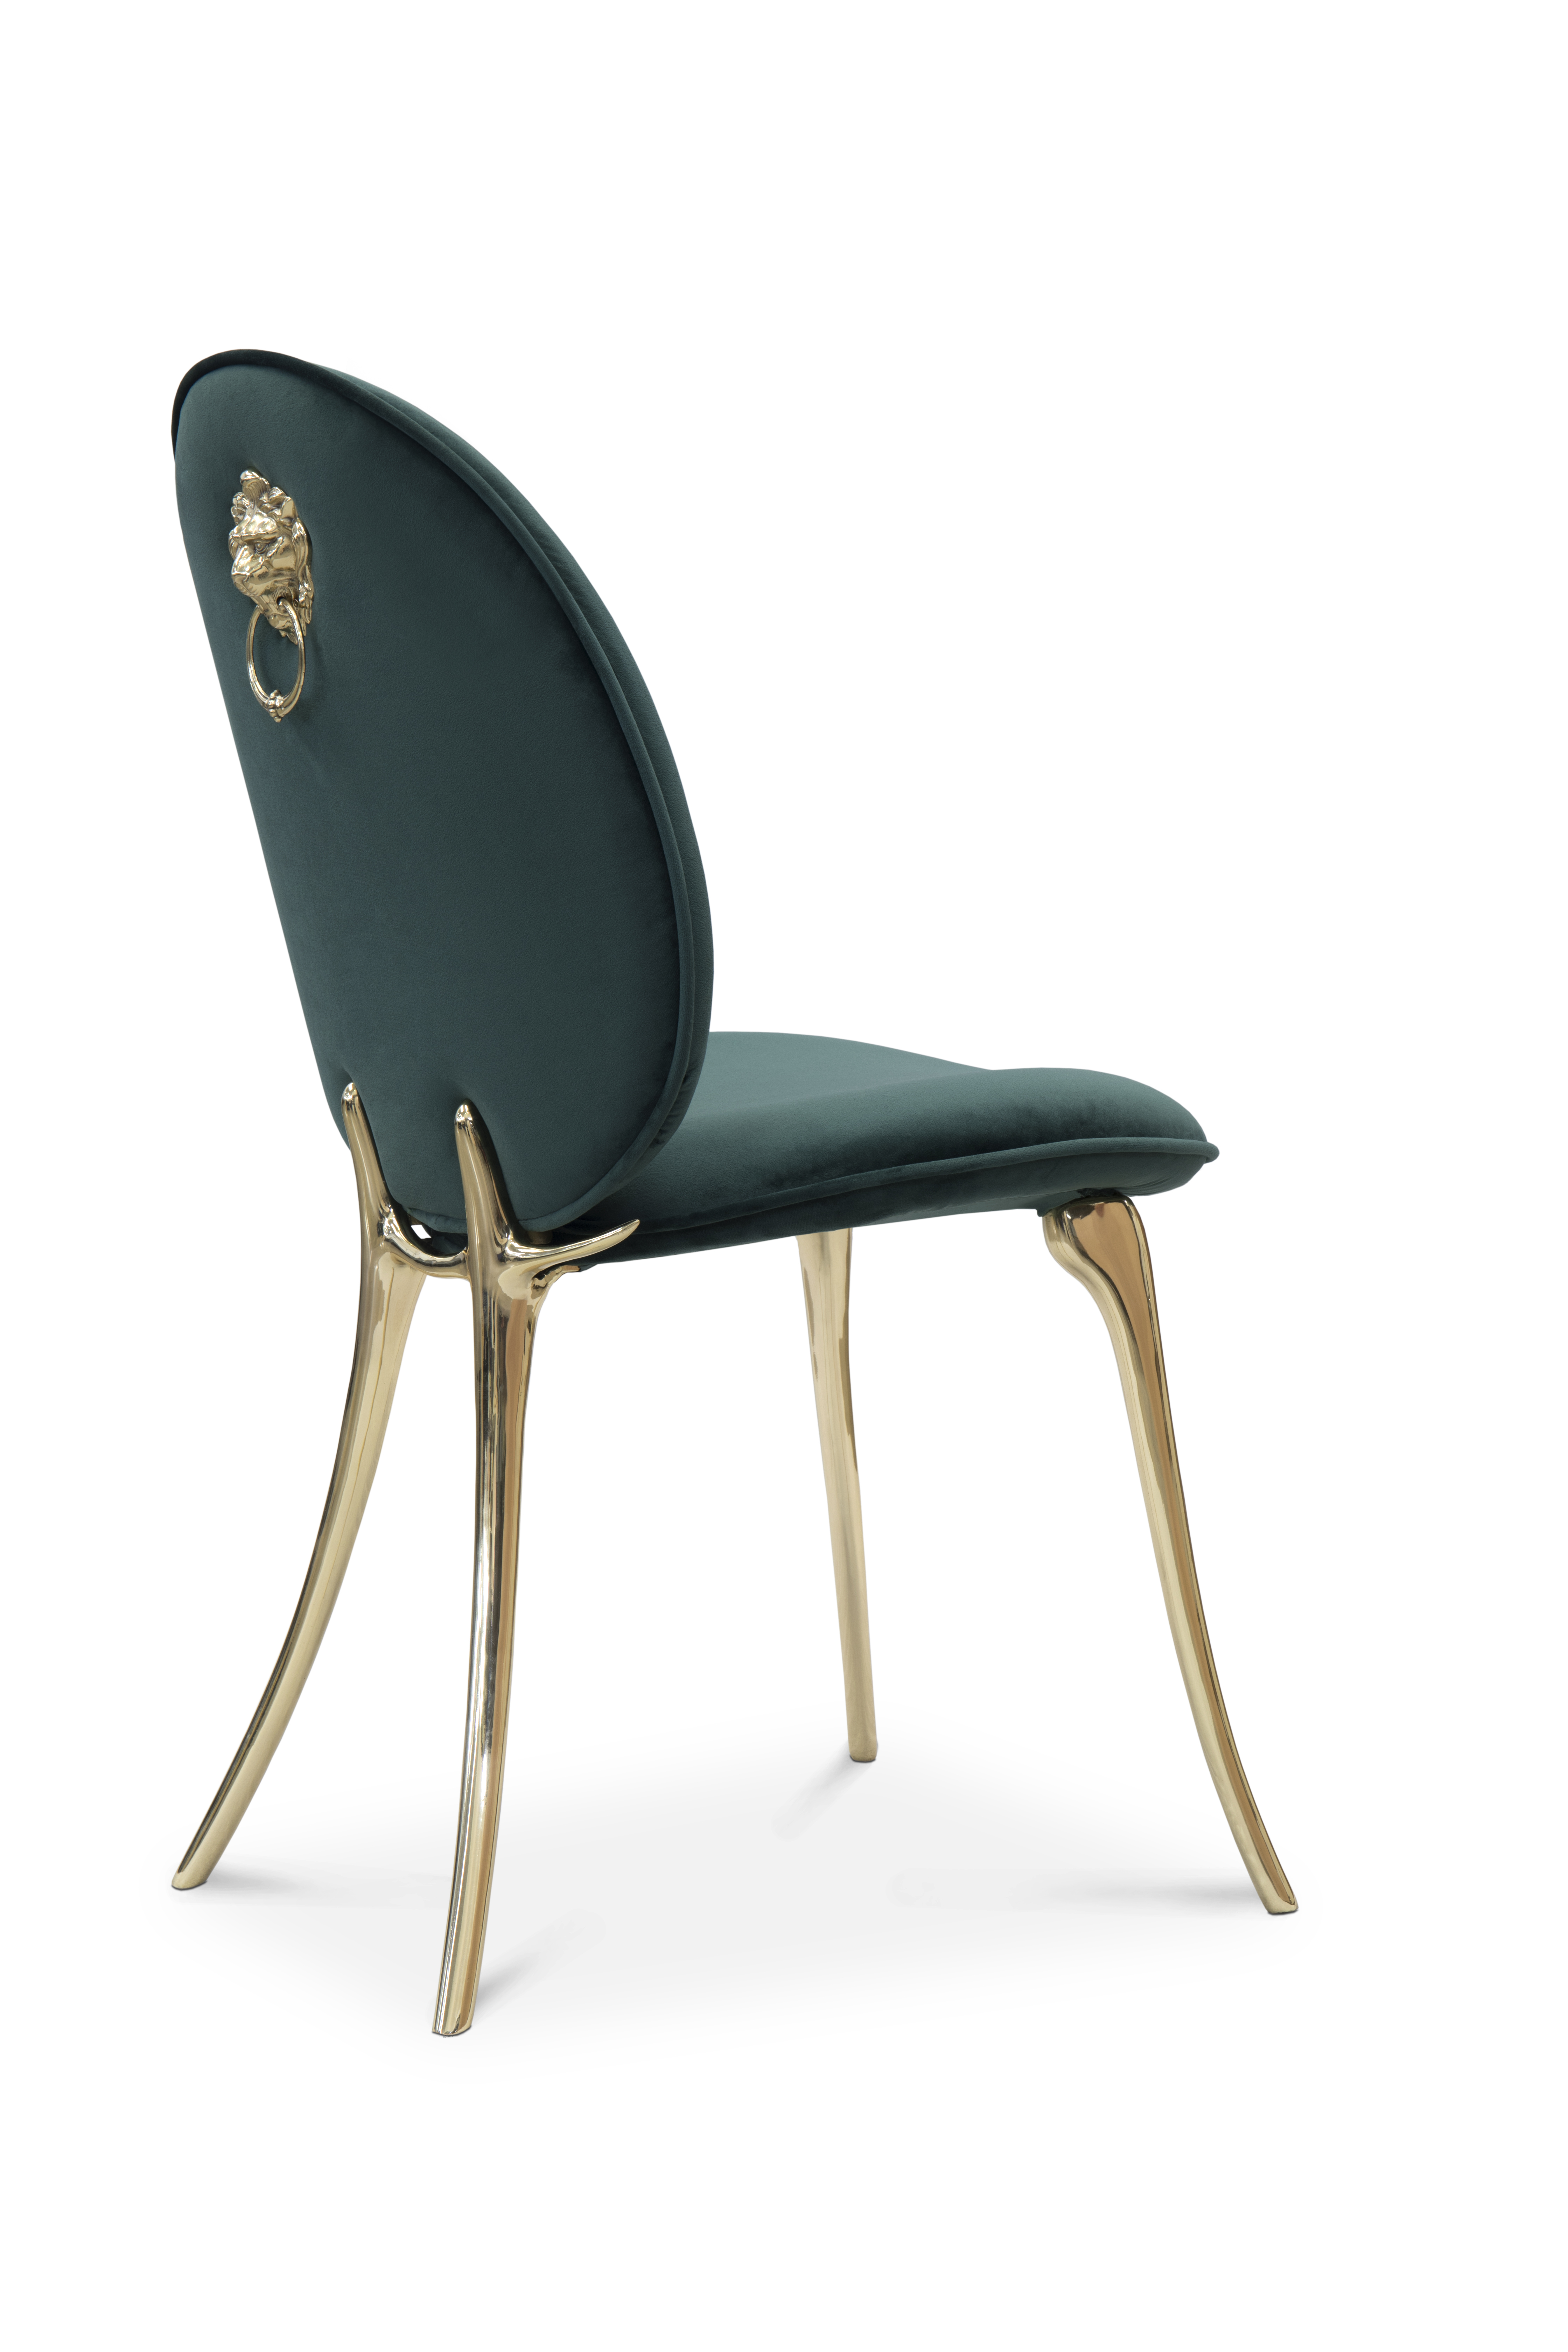 luxury dining chairs Luxury Dining Chairs That Will Become A Must For Your Dining Room Soleil 1